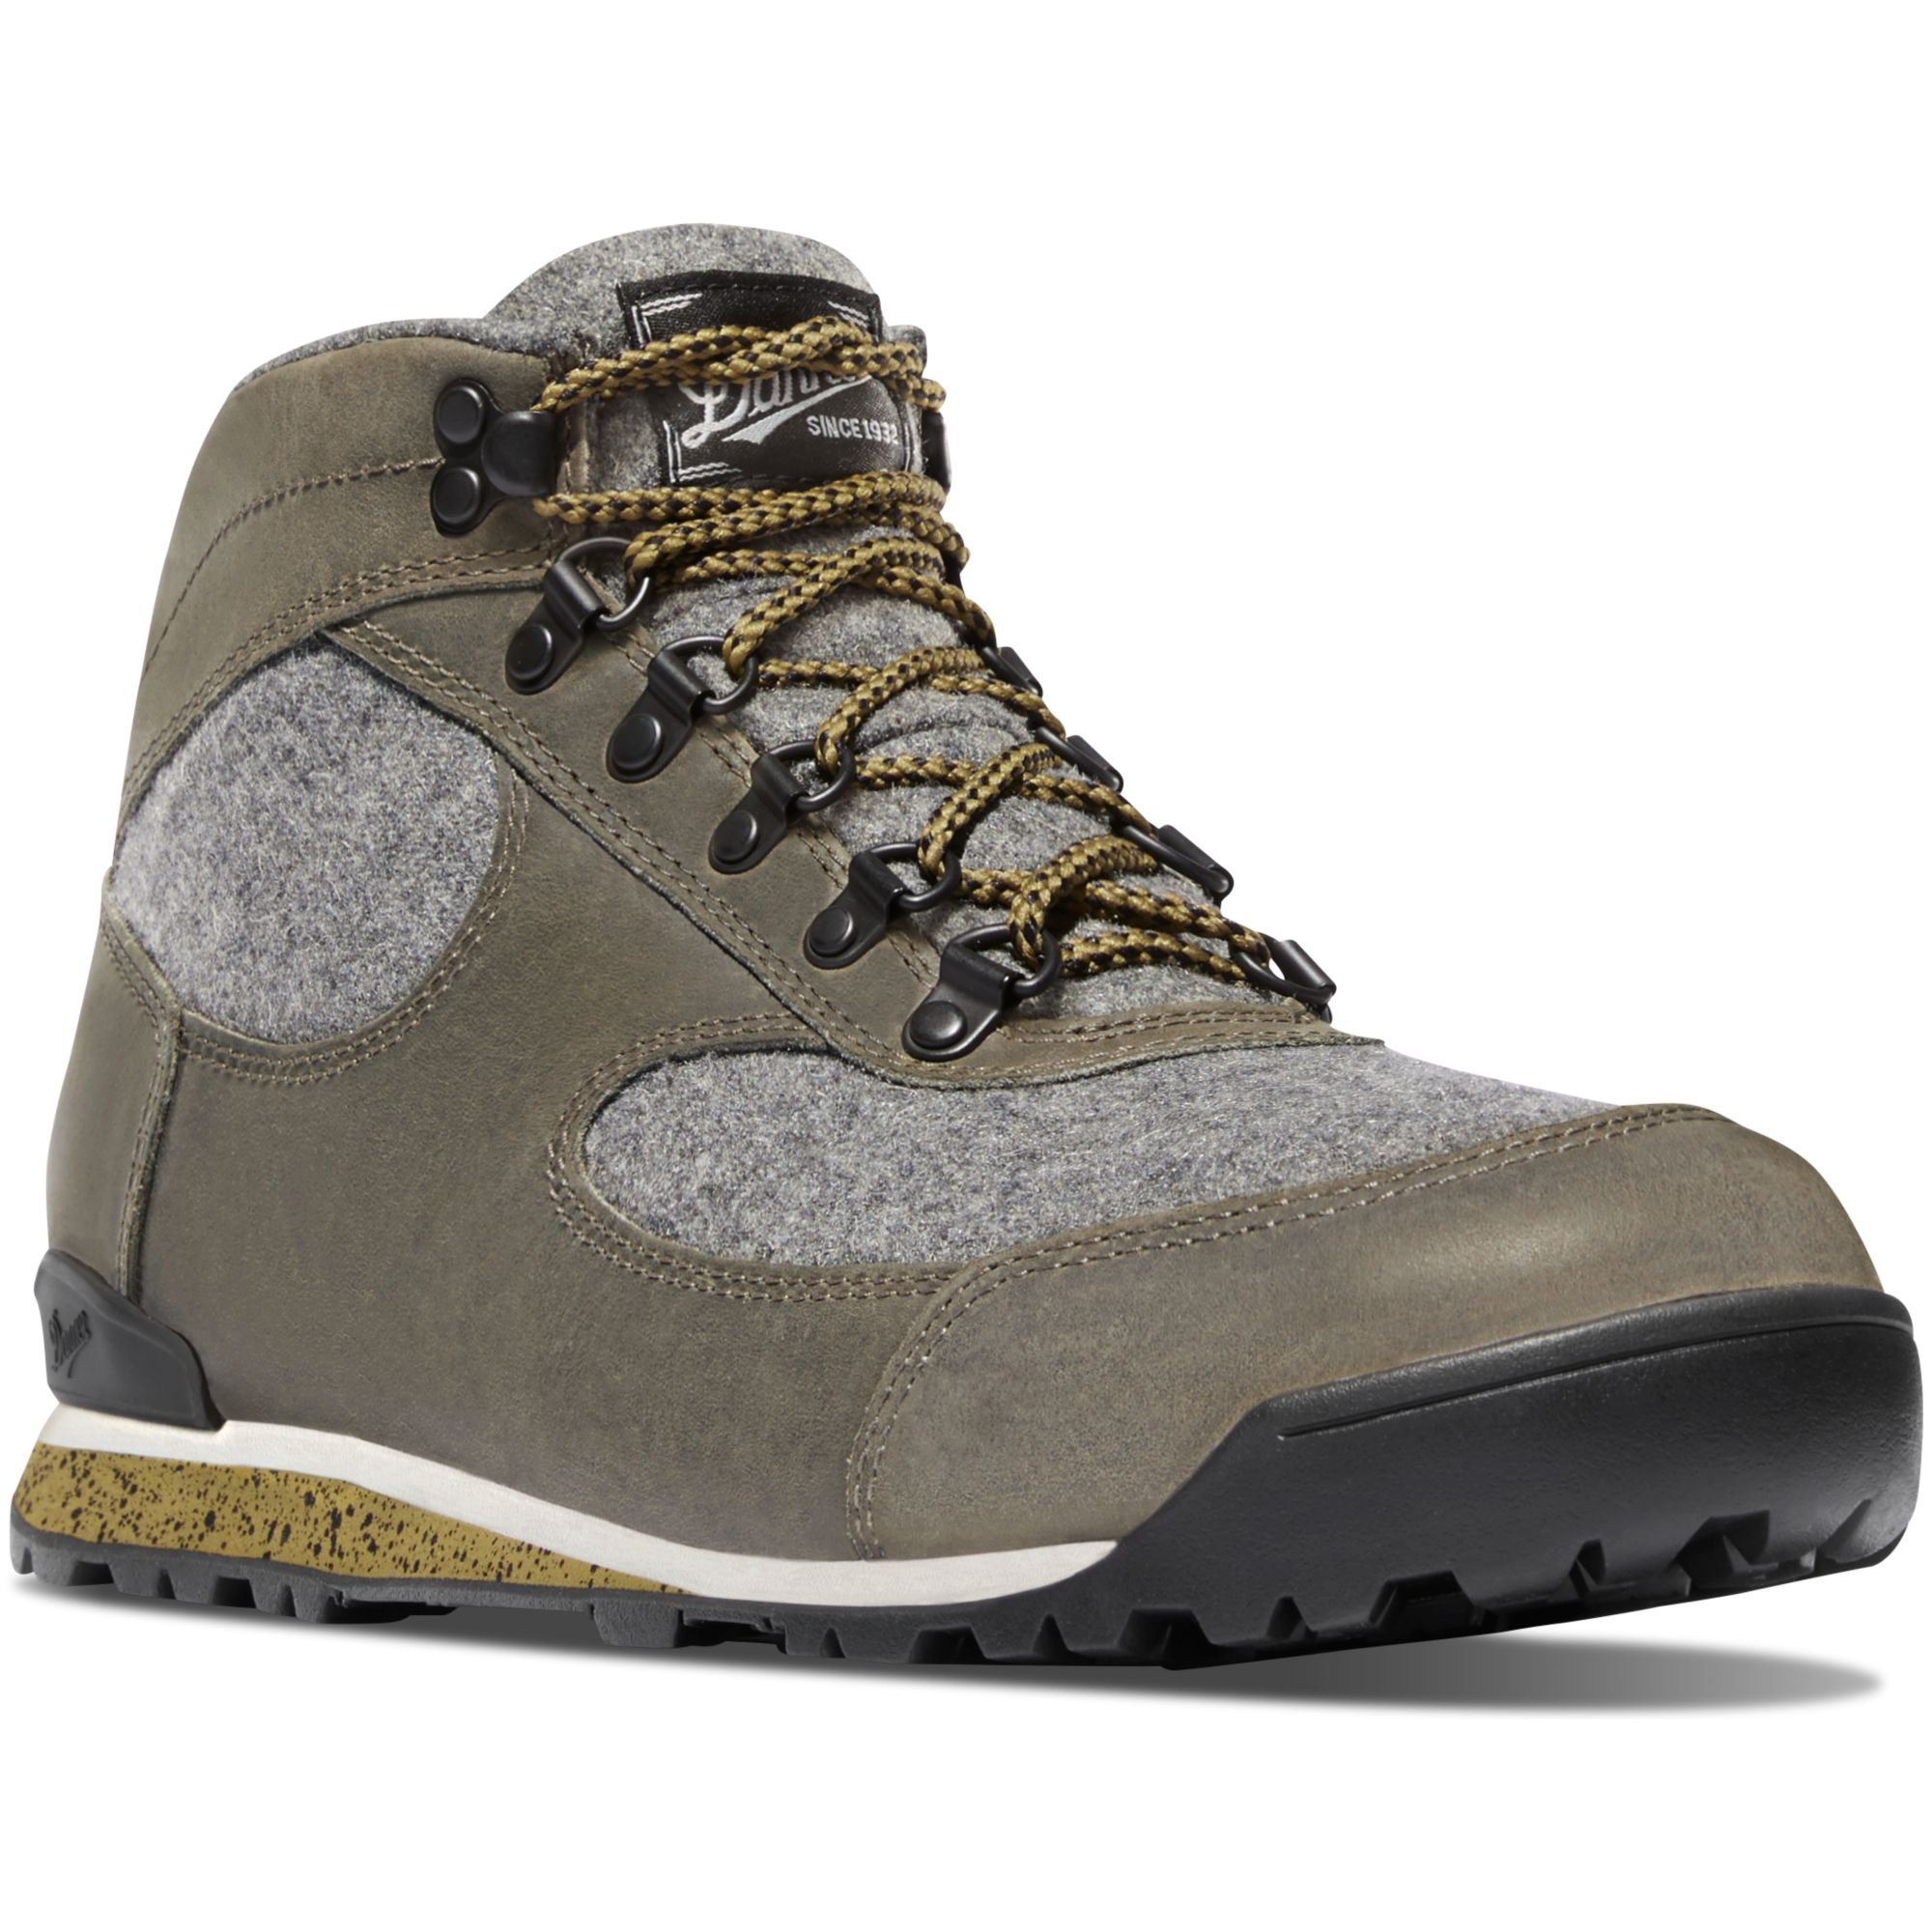 a4c310e1db7 Danner Jag Wool 4.5in Height Hiking Boots - Men's